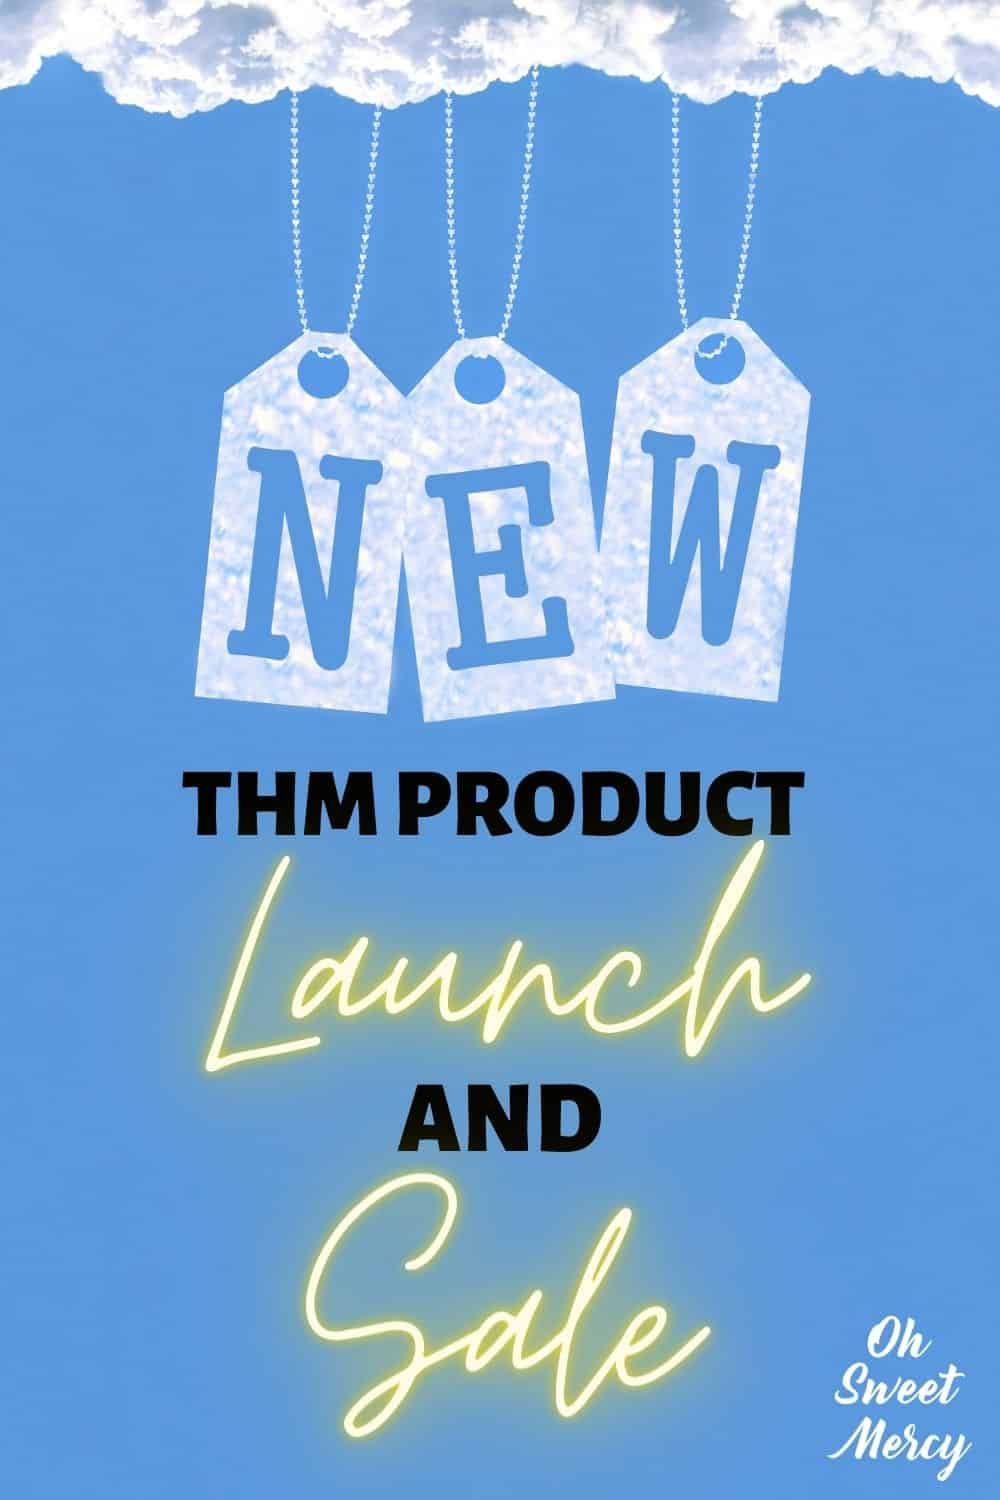 THM is launching 2 new products and having another 48 hour sale! Get the details here. 48 hour sale starts 9-7-21. #thm #thmlifestyle #thmsales #thmproducts #plantprotein #naturalmakeup